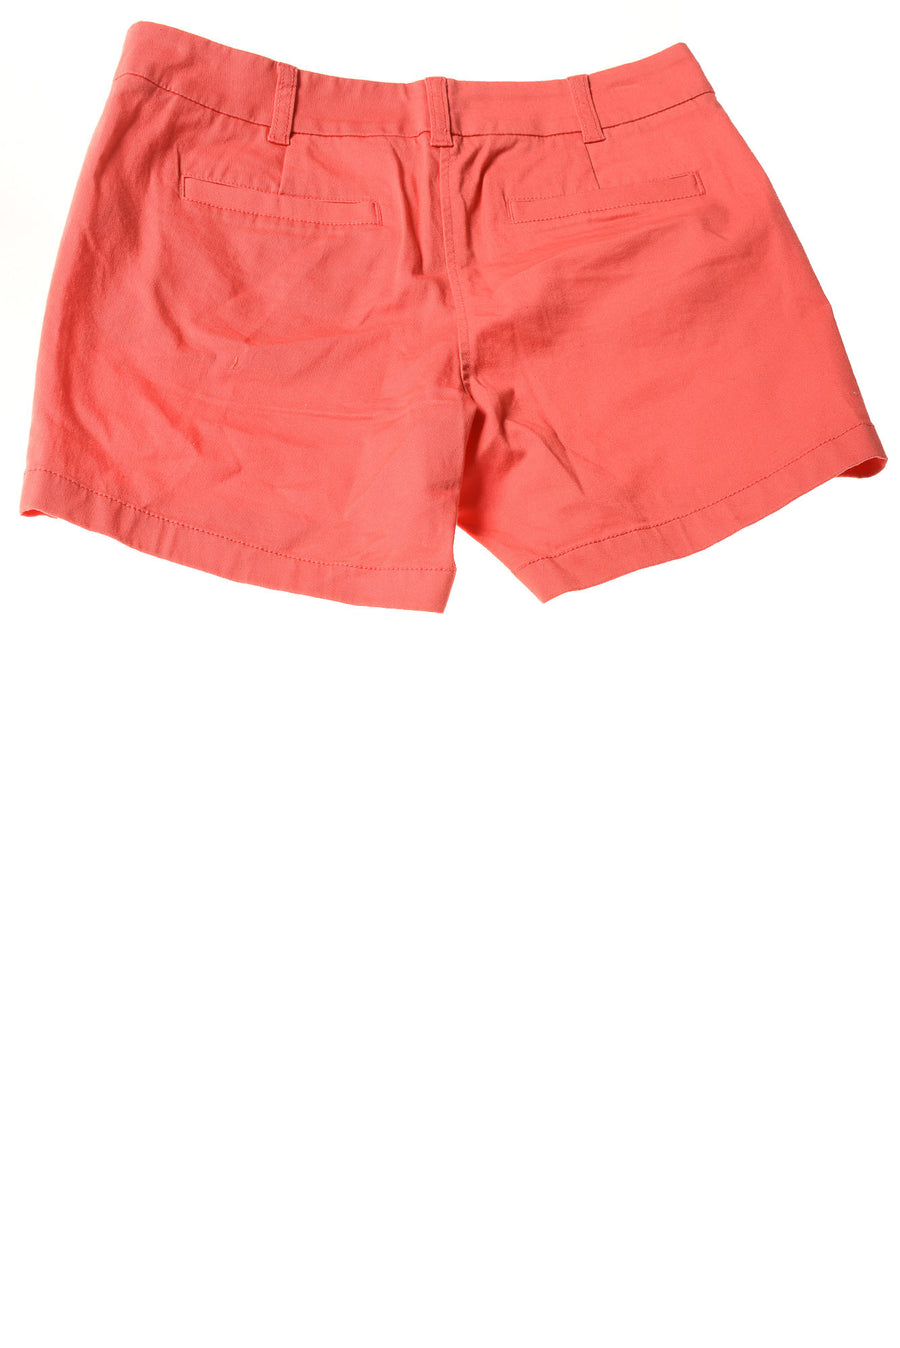 NEW J. Crew Women's Shorts 2 Salmon